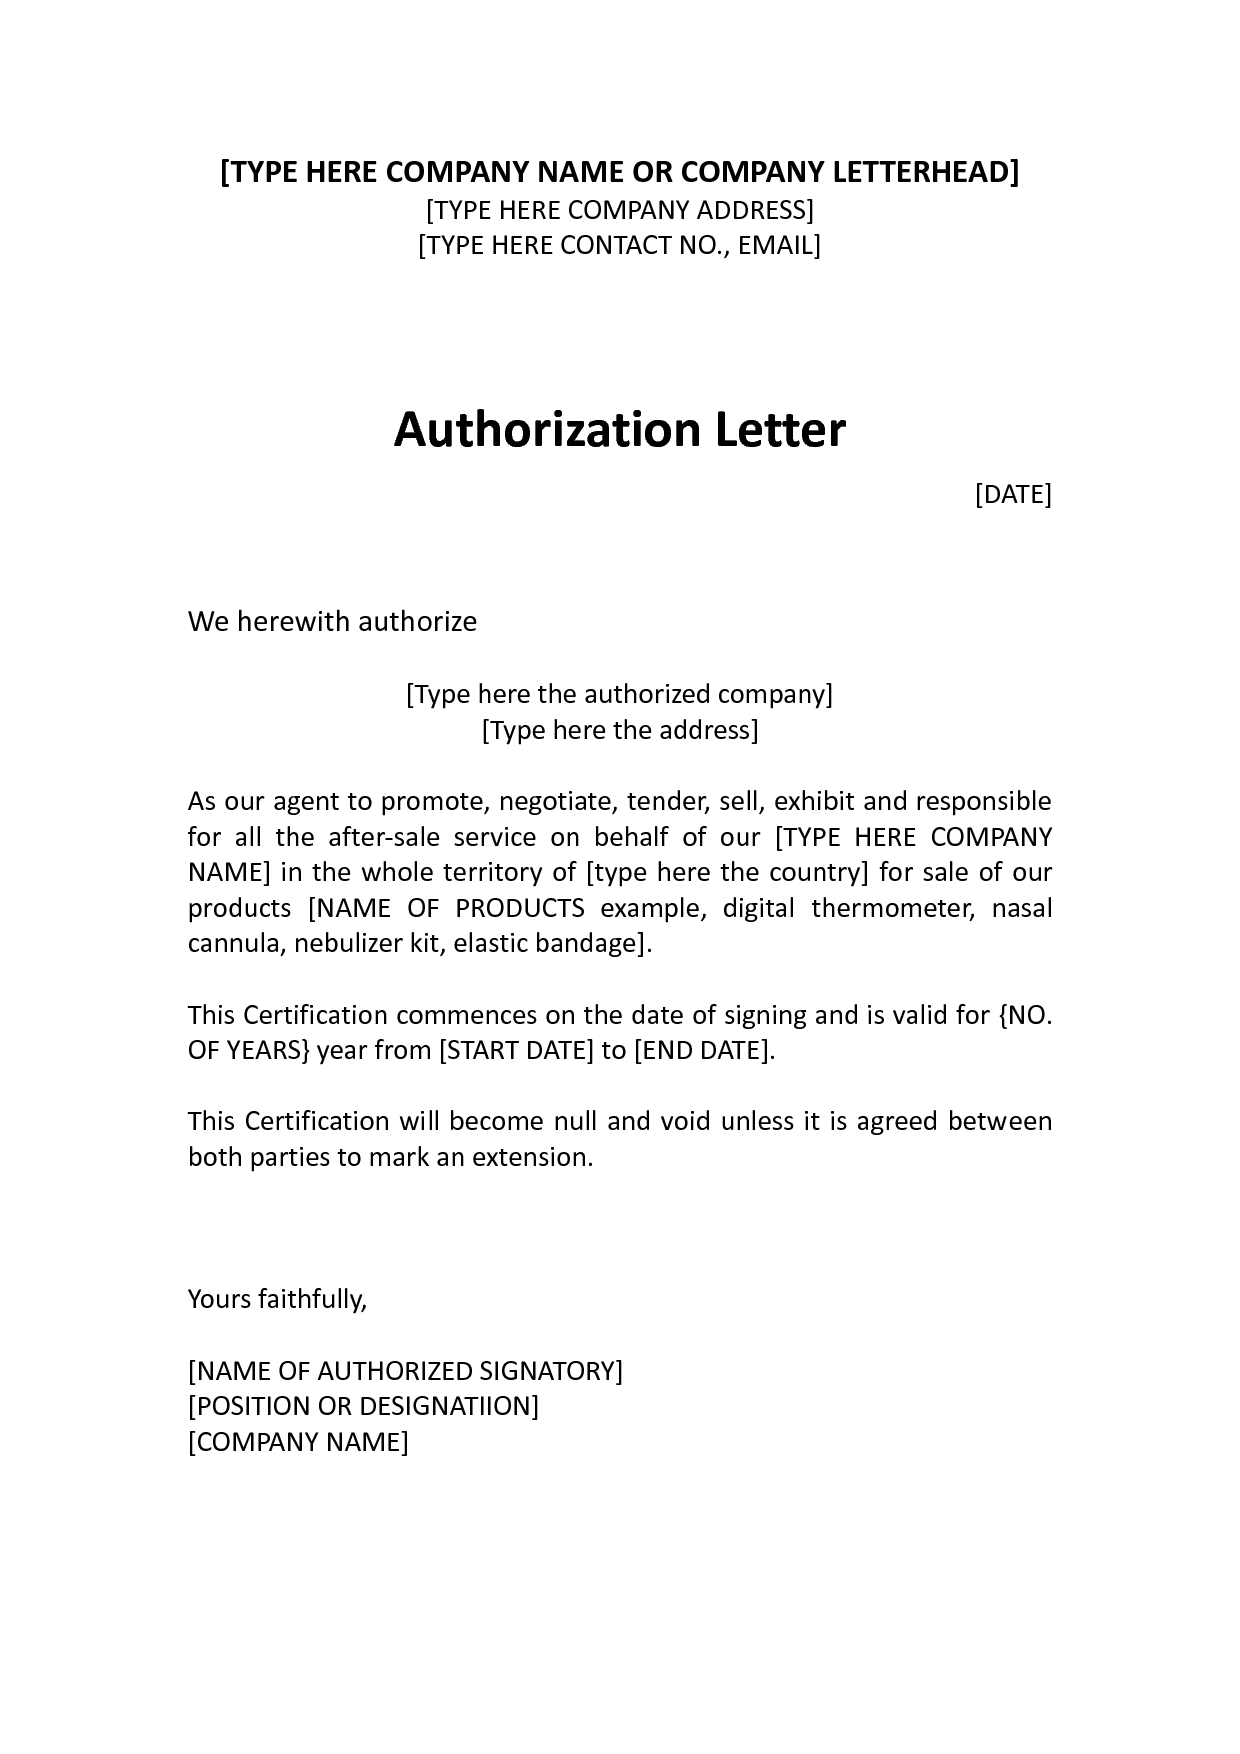 Free Notarized Letter Template - Authorization Distributor Letter Sample Distributor Dealer